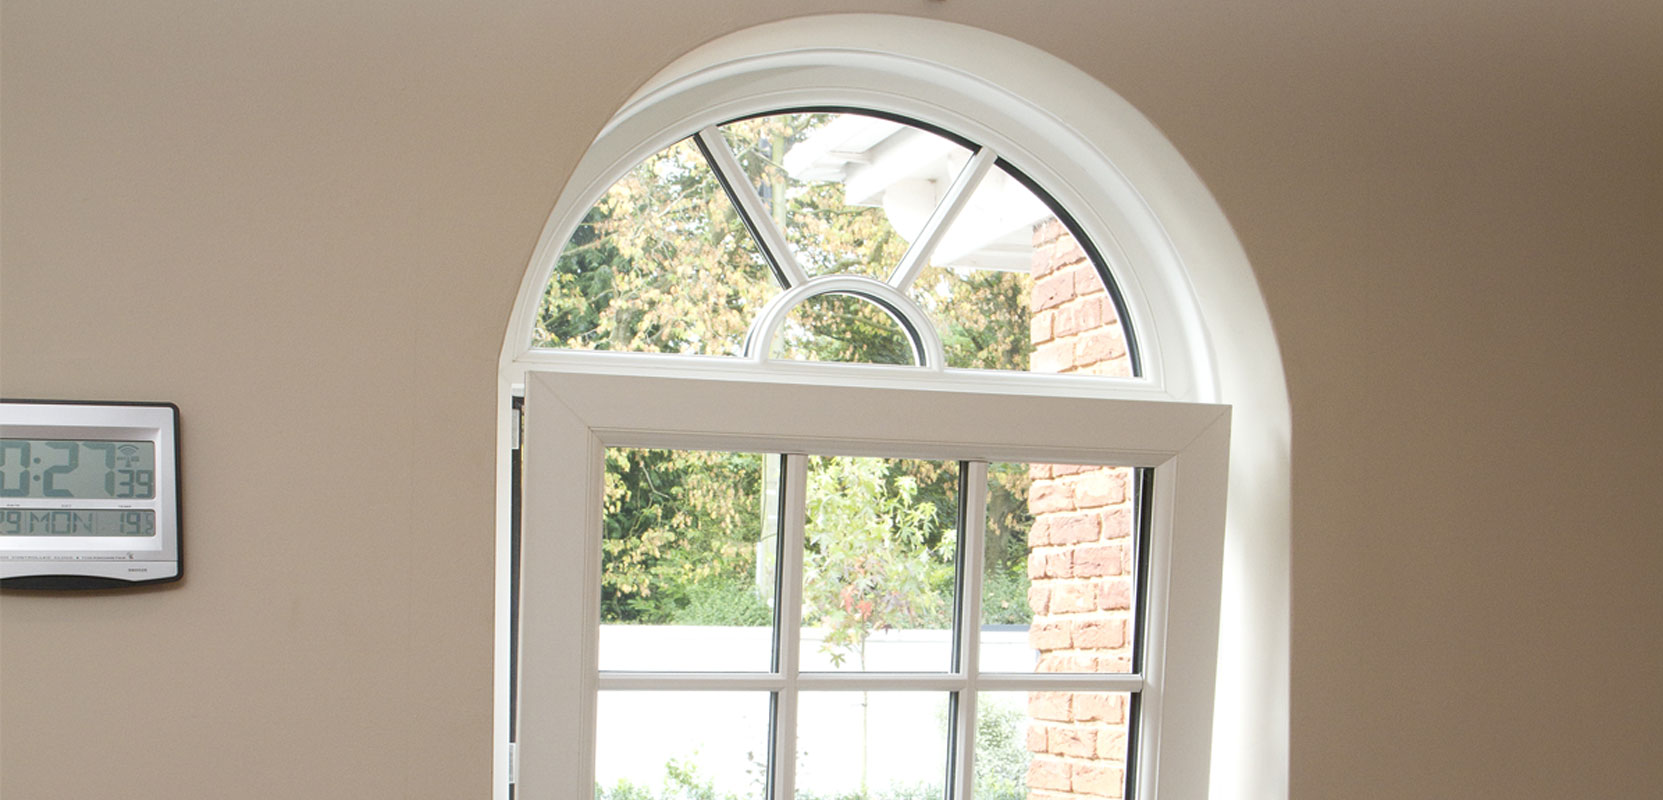 Photo of a tilt and turn window